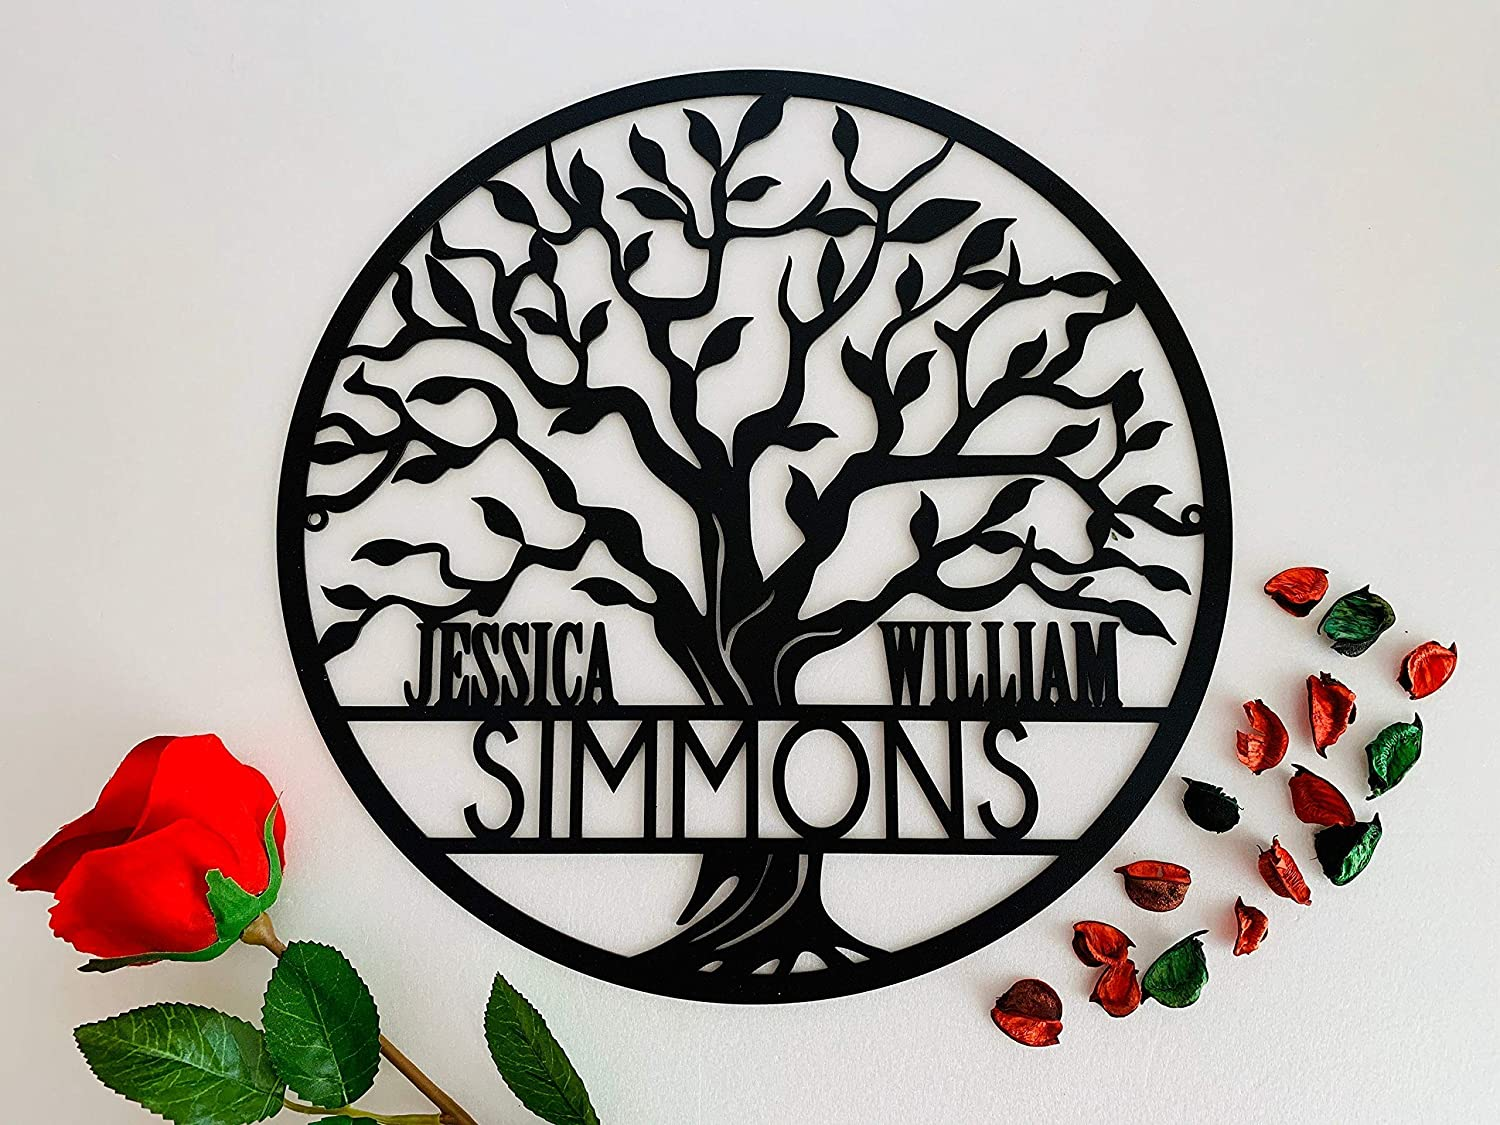 Personalized Tree of Life Metal Sign Family Last Name Outdoor Use Wedding Gift Custom First Names Front Door Wall Art Decor Wreath Wall Hanging Monogram Plaque Housewarming Gift for Couple Door Hanger